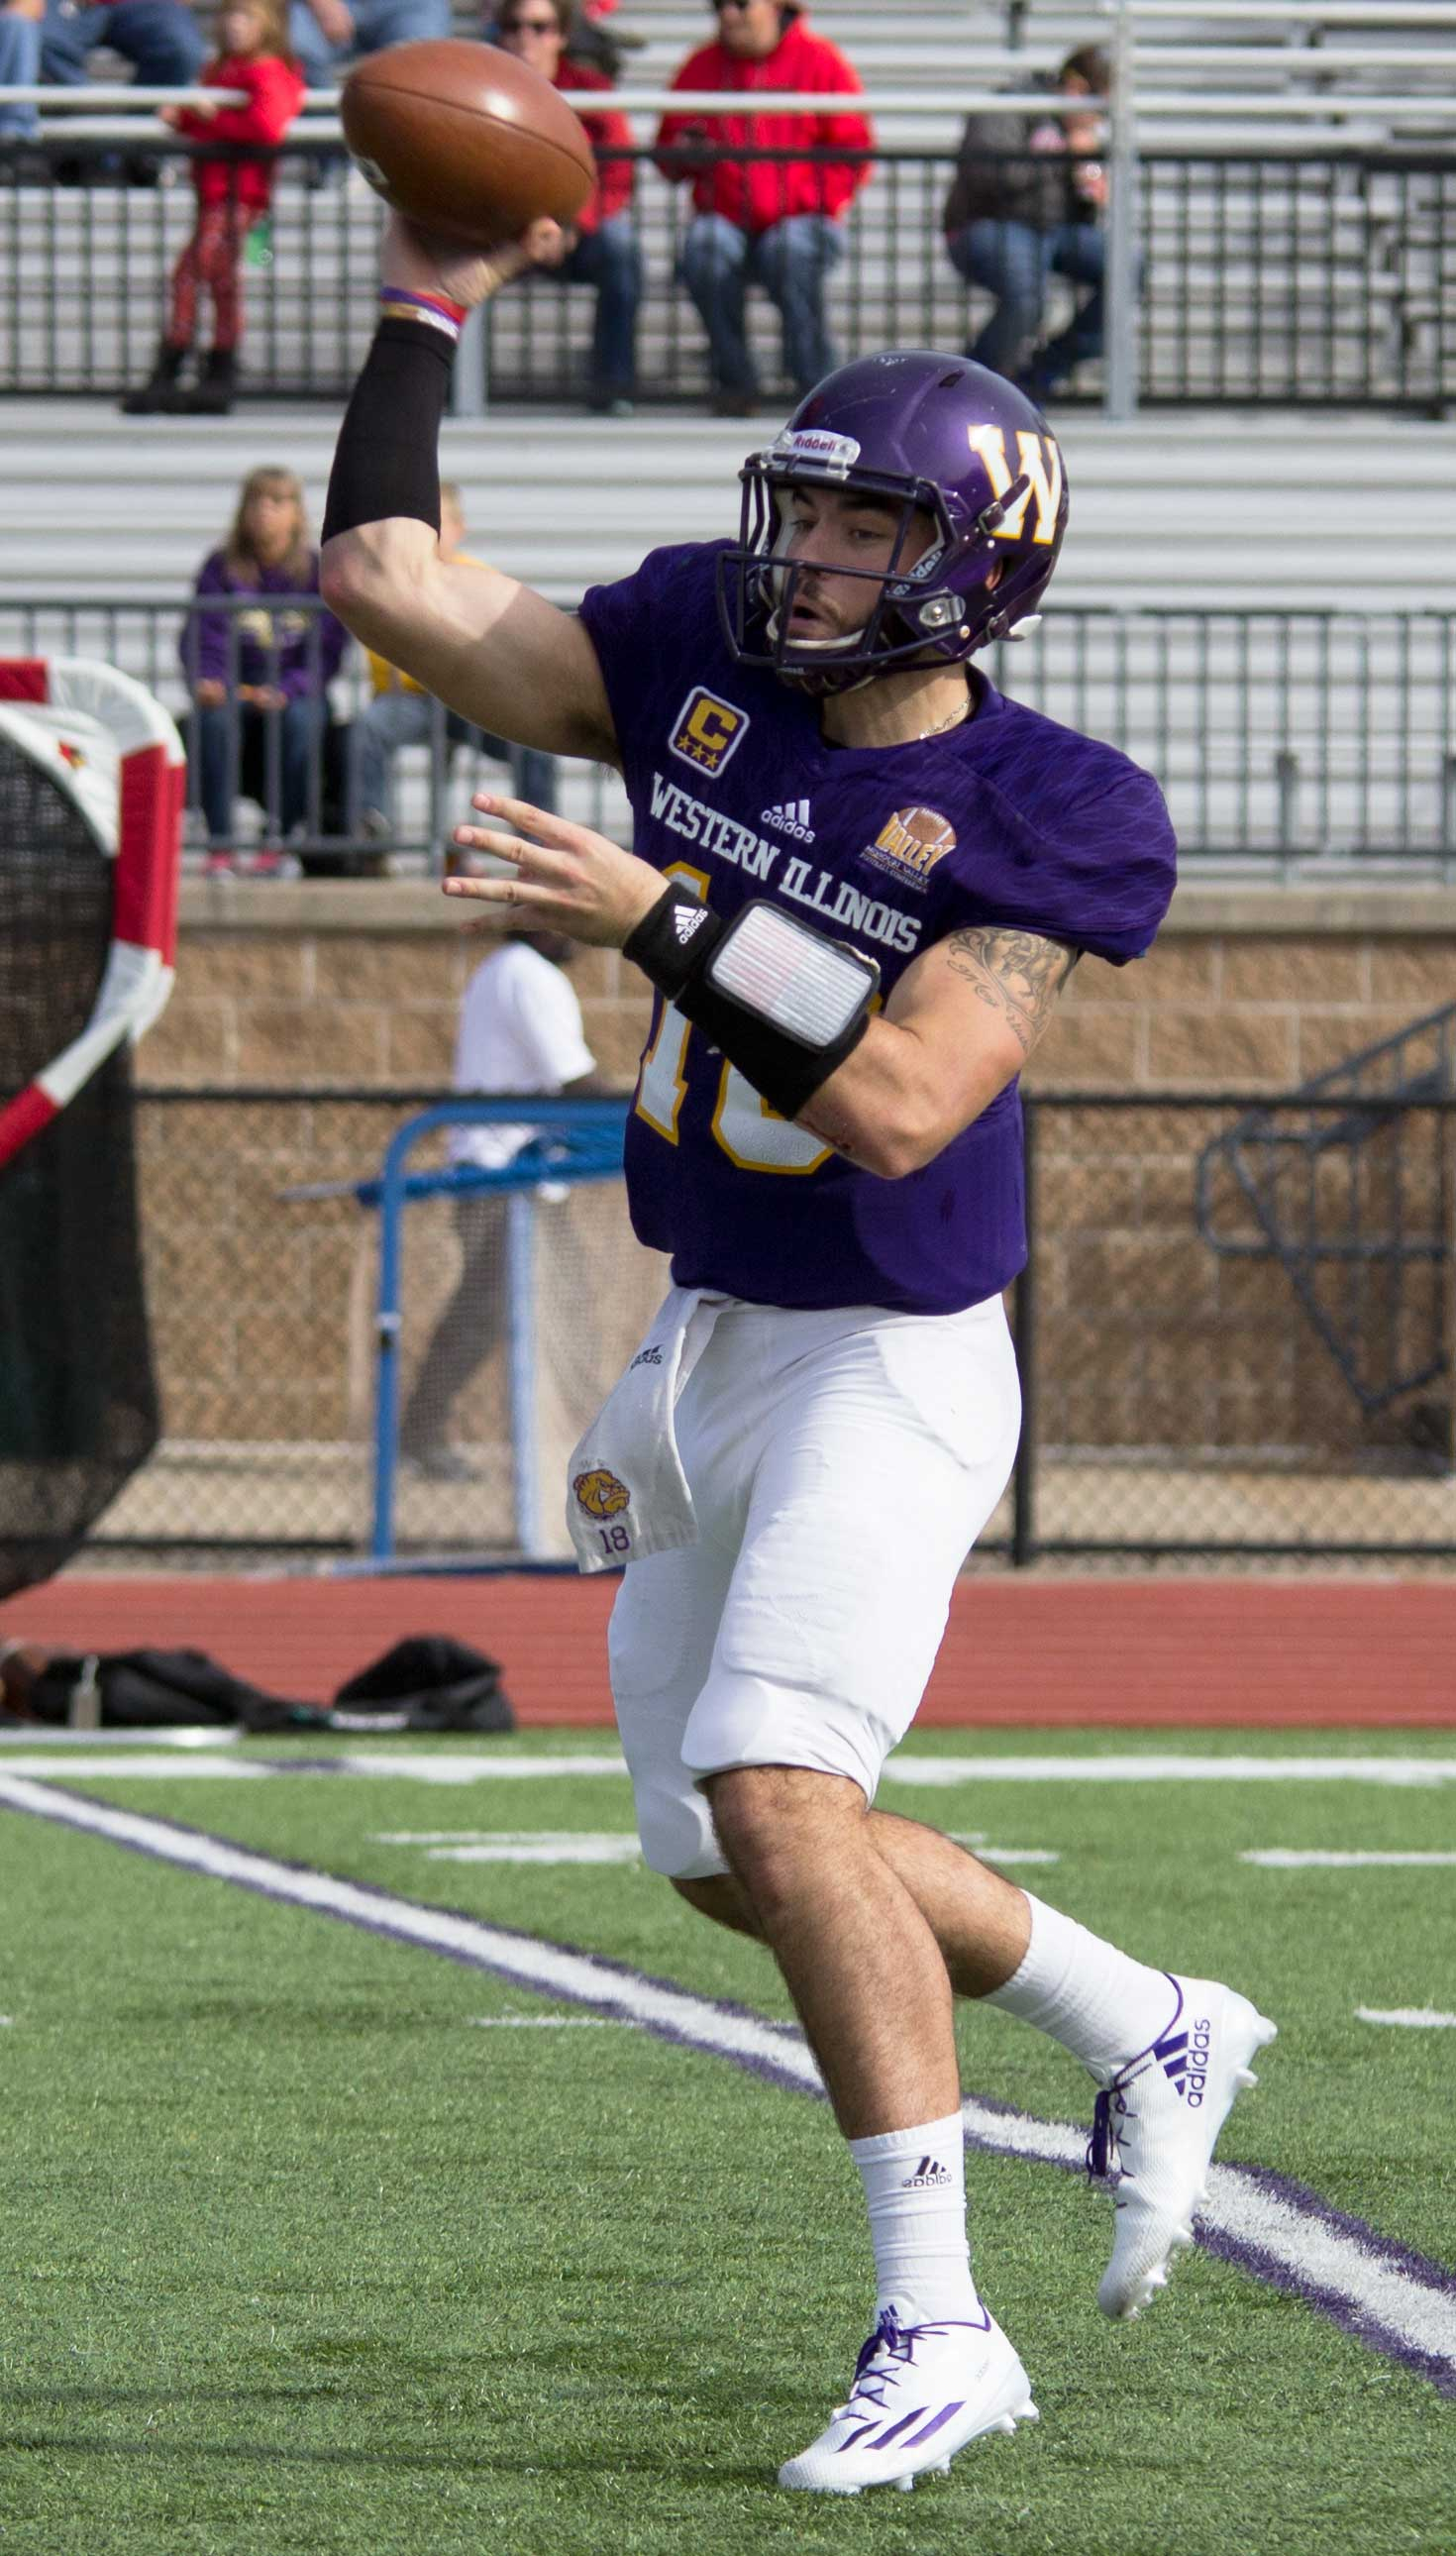 Sean McGuire ending spring ball on a high note.